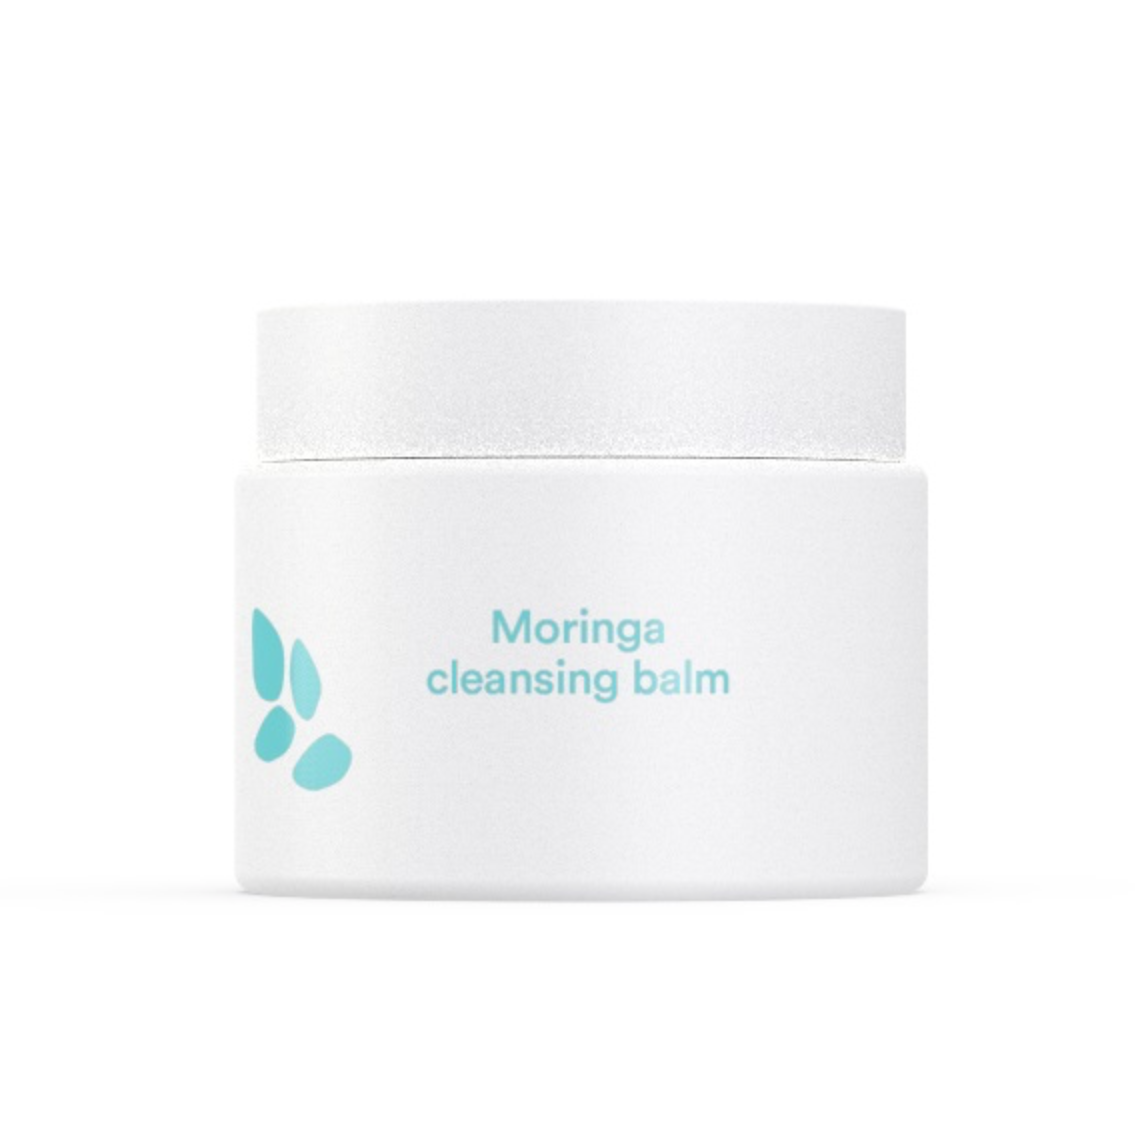 ENATURE   Moringa Cleansing Balm  COMING SOON